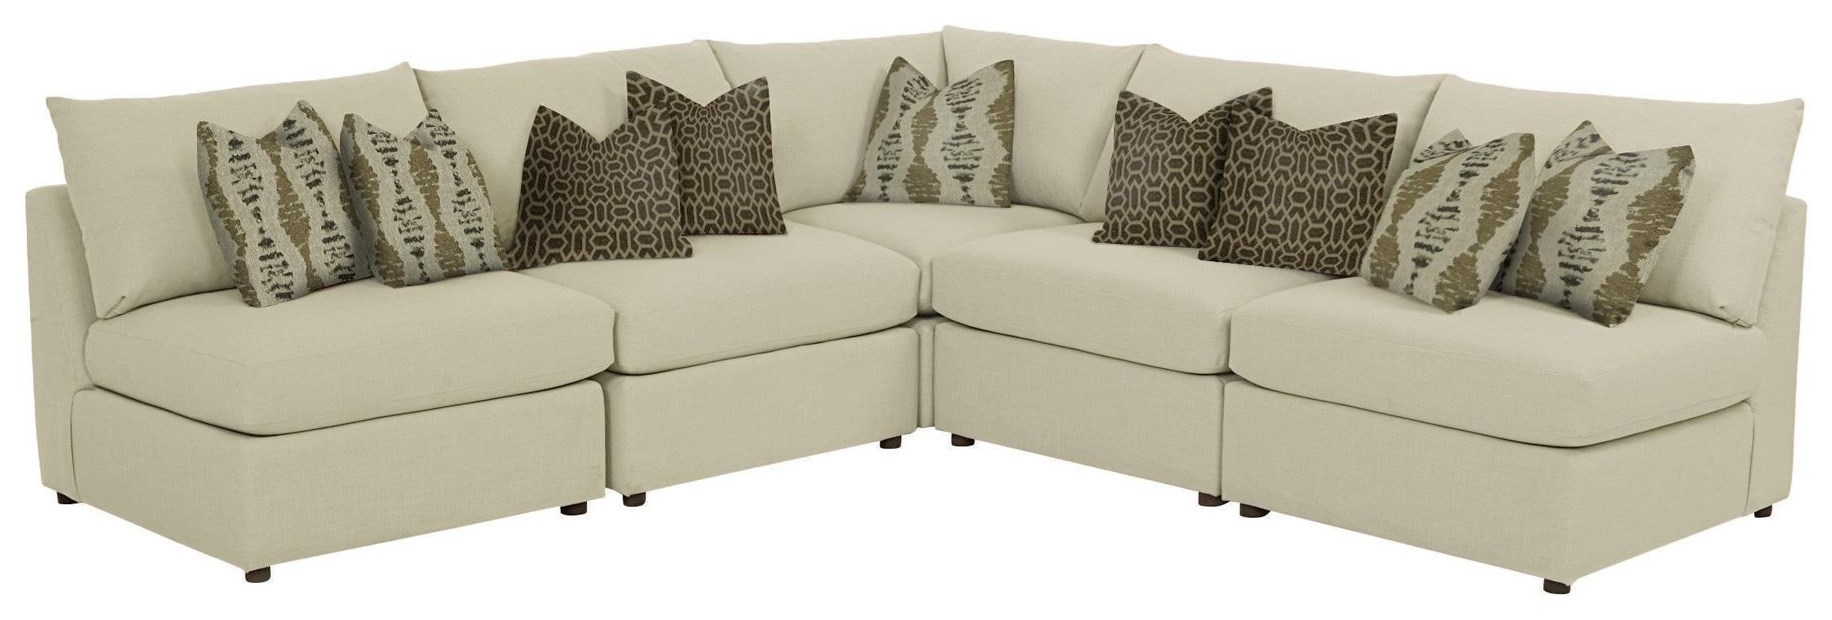 Beckham 5 pc L-Shaped Sectional in Straw wit